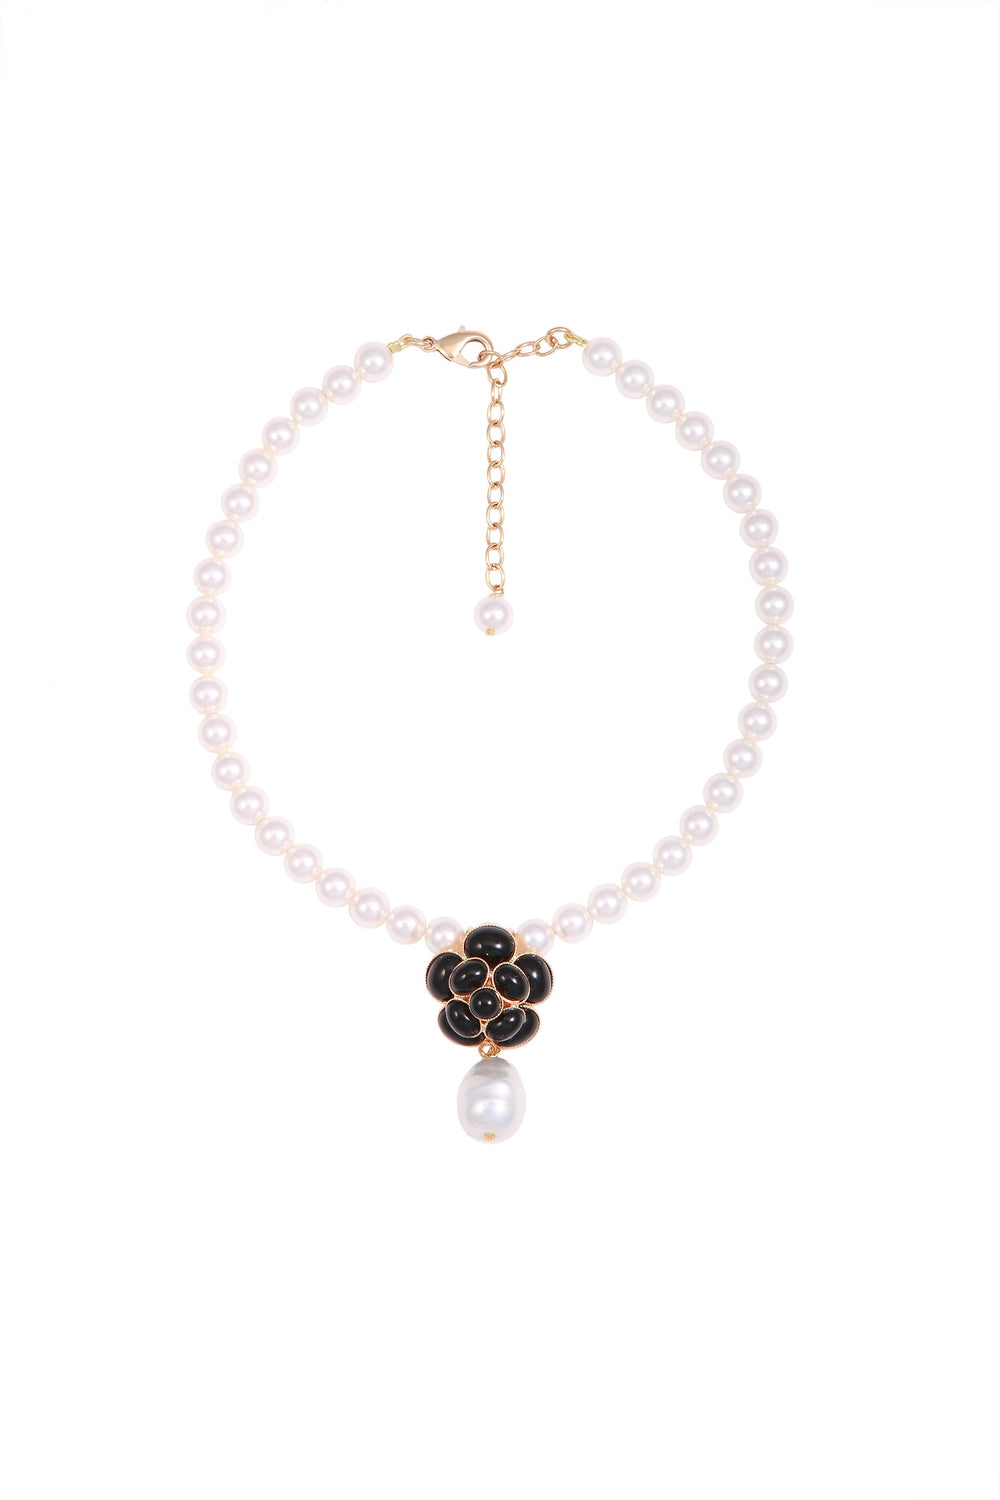 MISS CAMELIA - Necklace